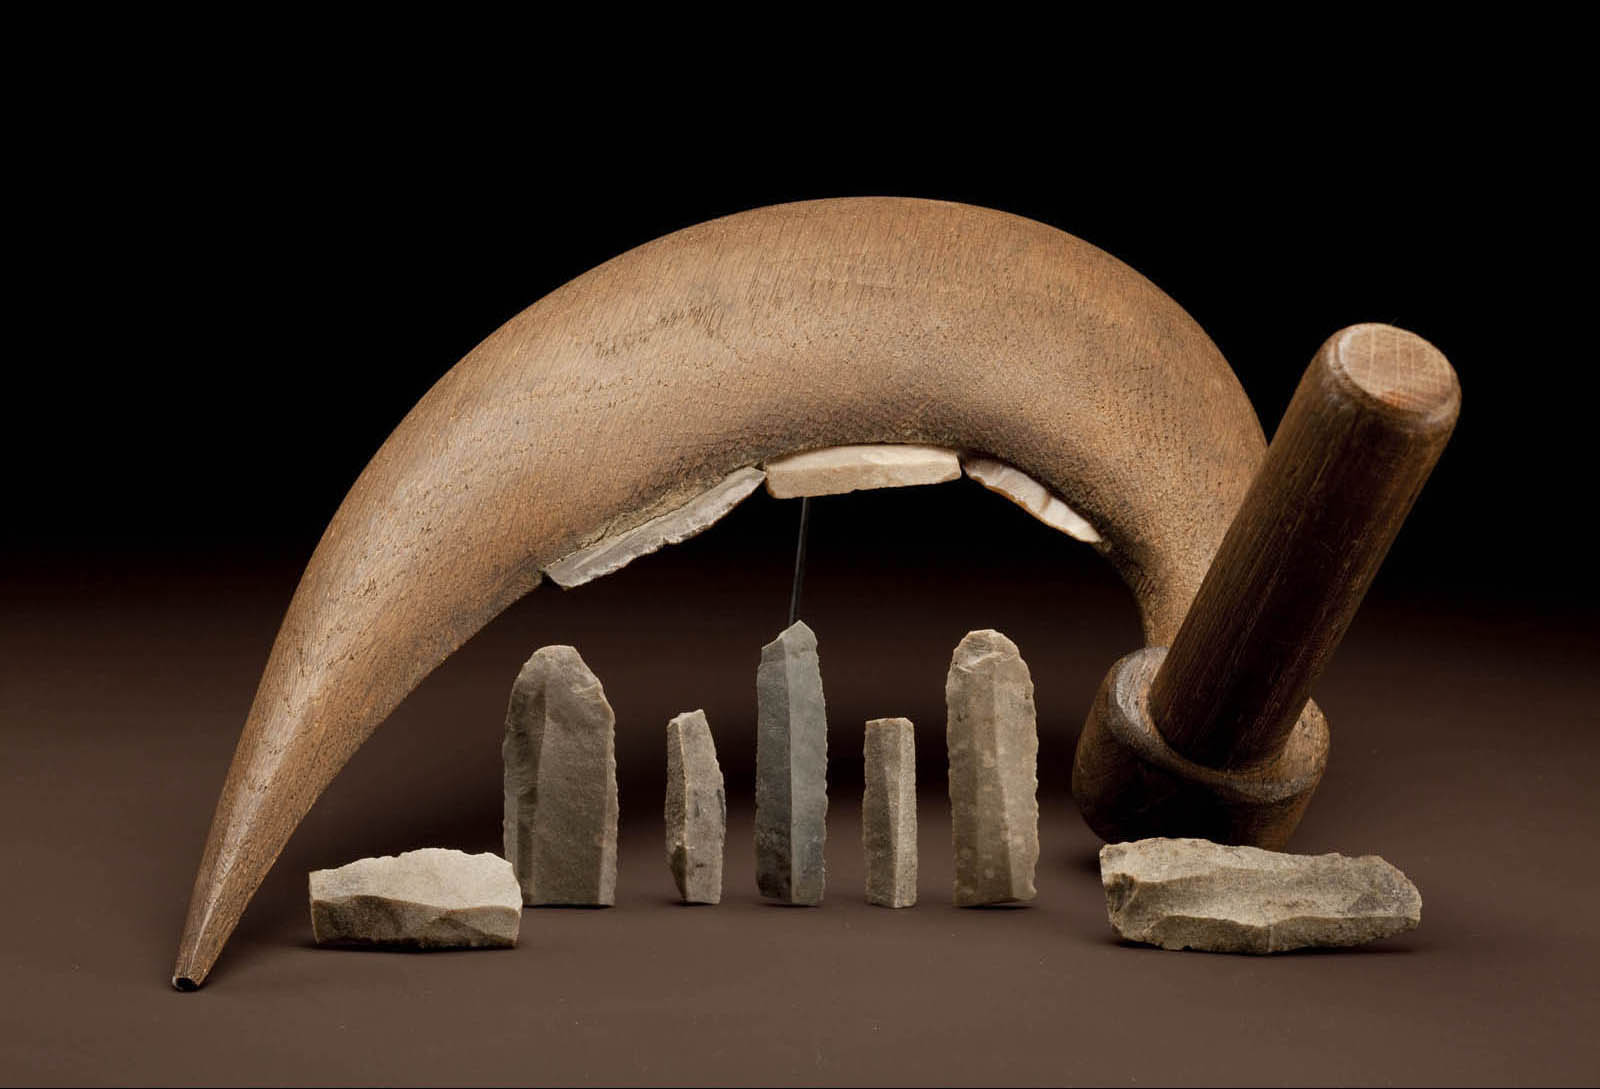 Technologies enabling plant and animal domestication, as seen in by these stone sickle blades from Dynastic Egypt and Ali Kosh, Iran, represent a turning point of human interaction with the environment. Image courtesy of Chip Clark, Smithsonian Institution.